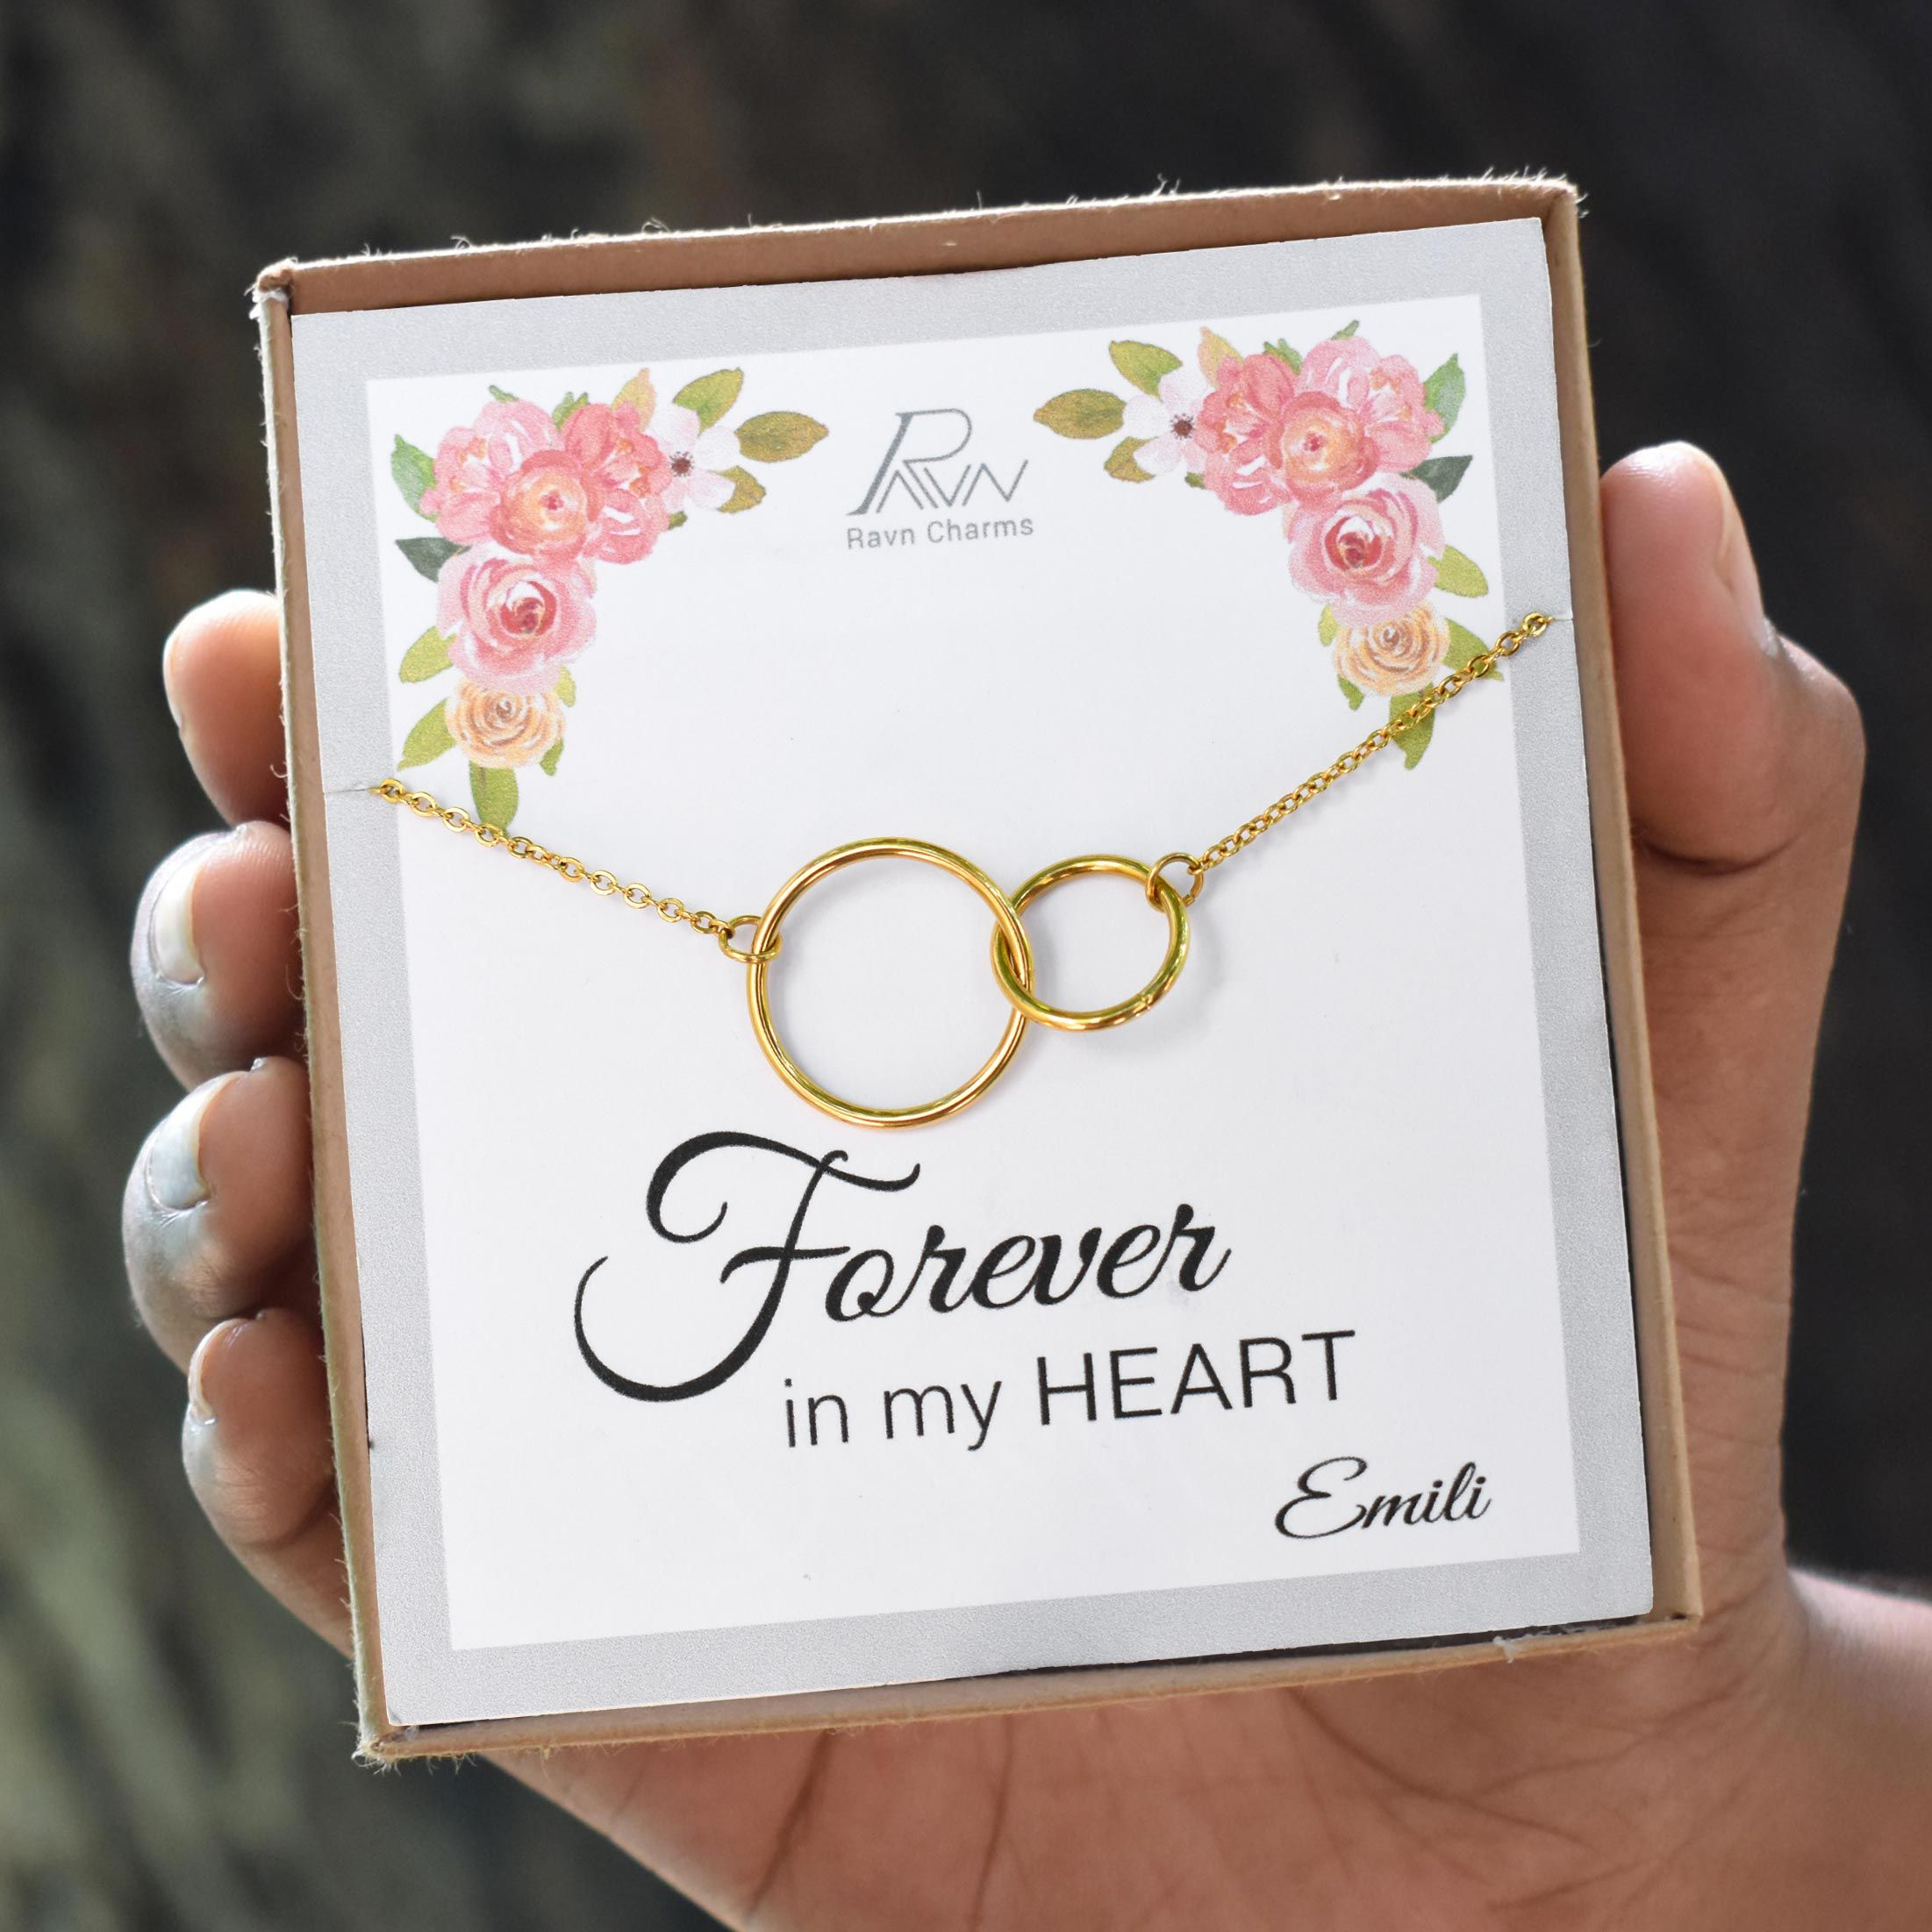 Personalized gift for her necklace gift ideas for